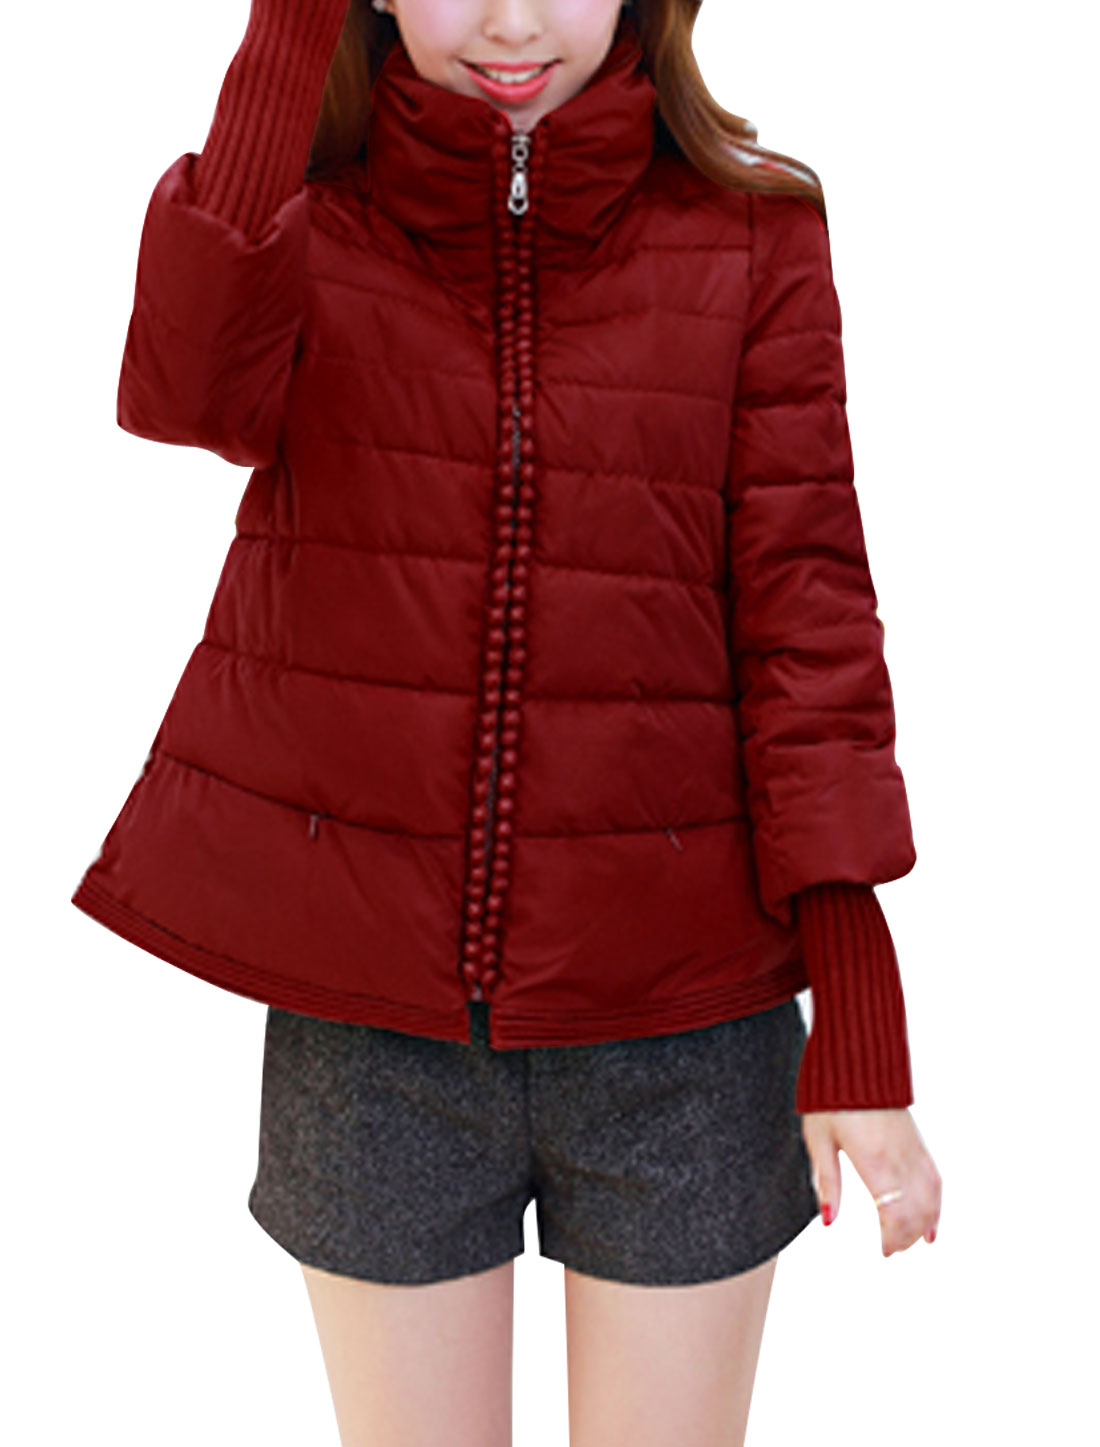 Women Zip Up Ribbed Cuff Panel Beads Decor Down Jacket Burgundy M